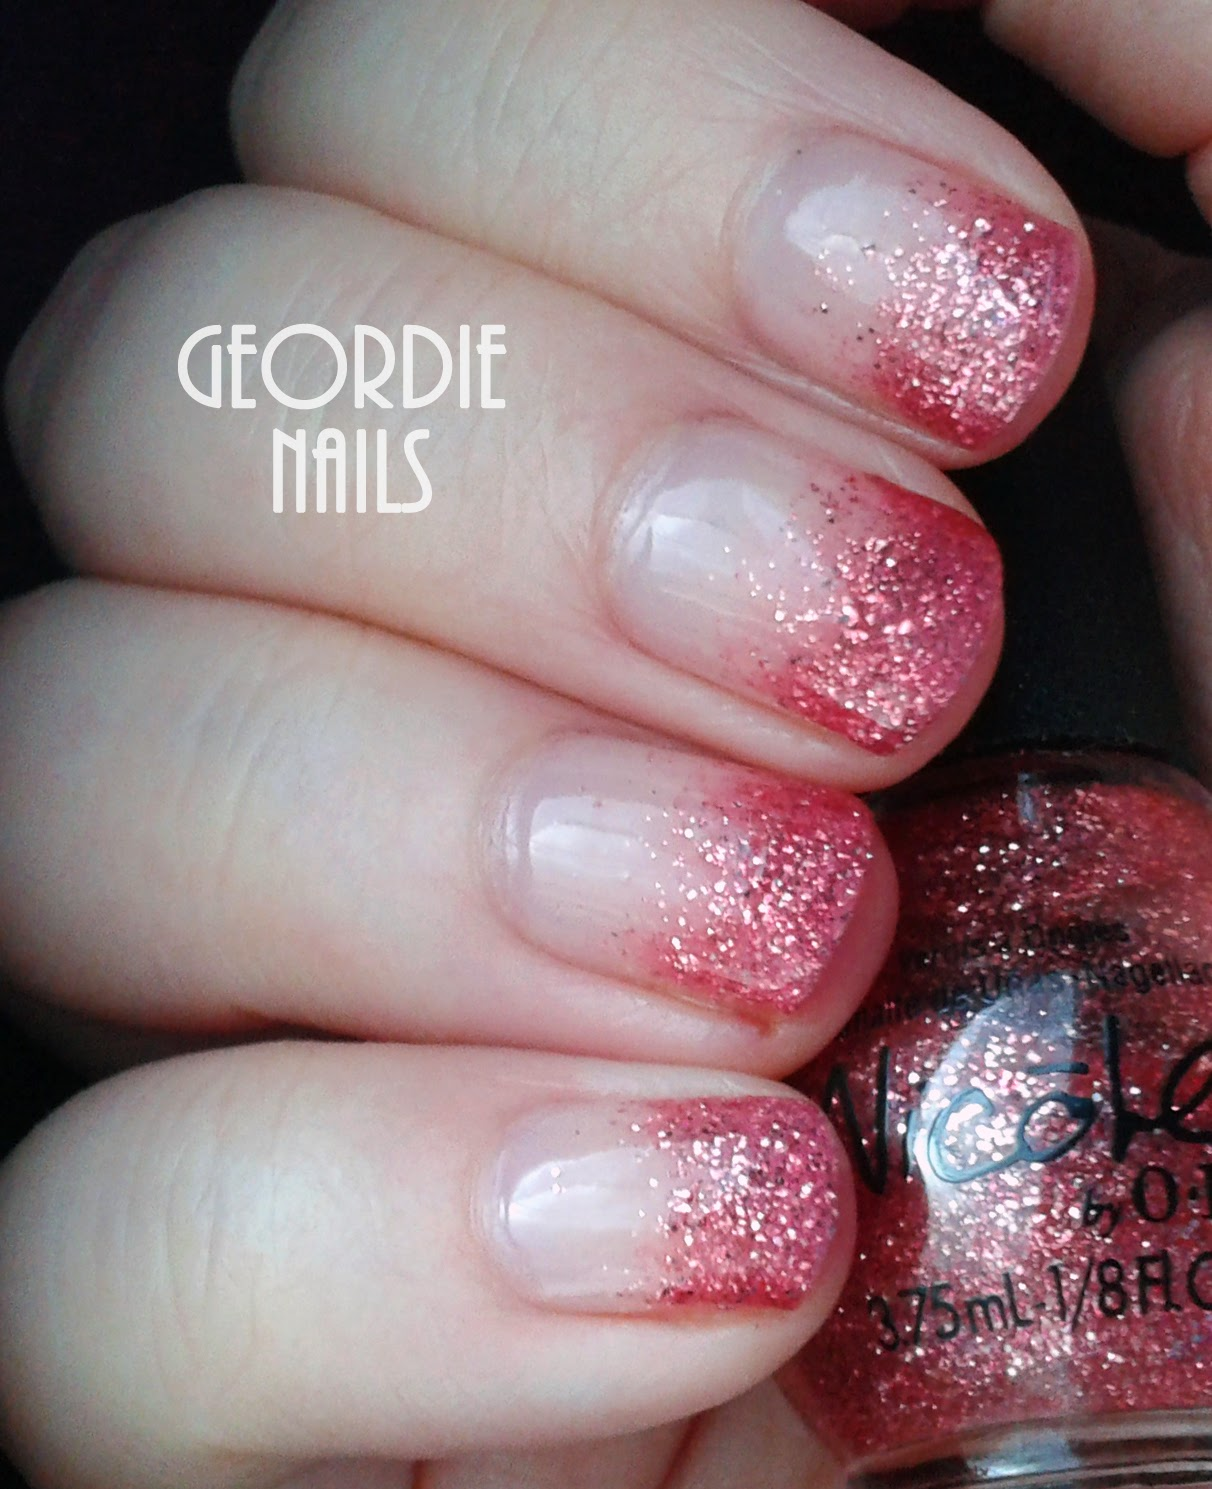 Geordie Nails: Pink Glitter Gradient Manicure